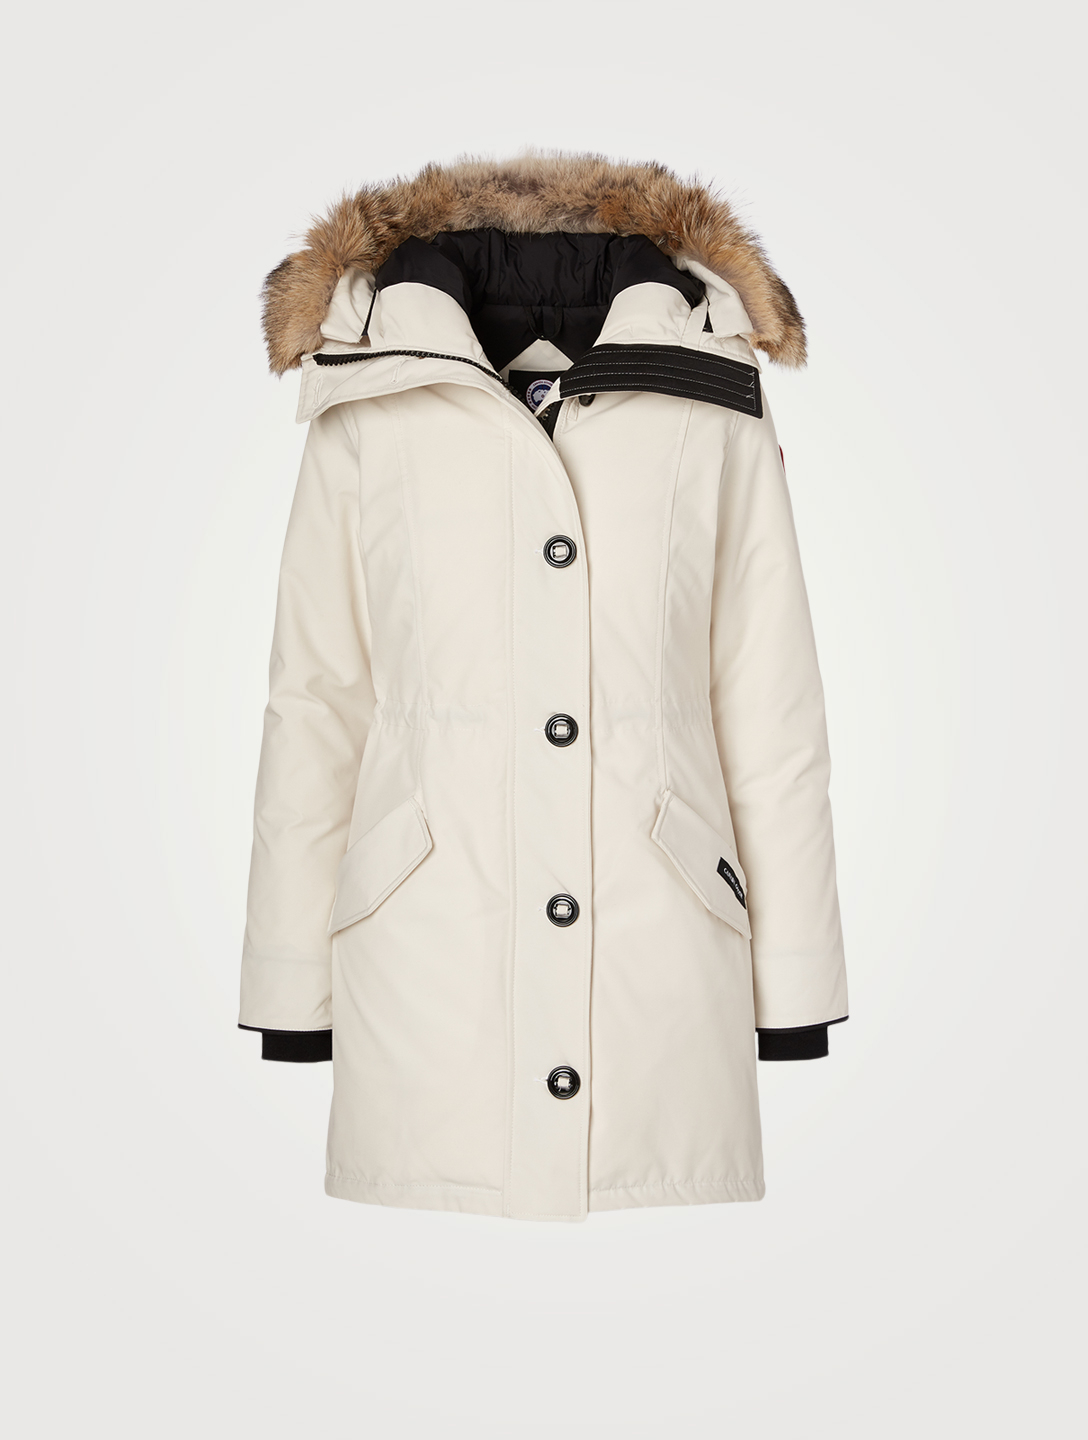 CANADA GOOSE Rossclair Down Parka With Fur Hood Women's White